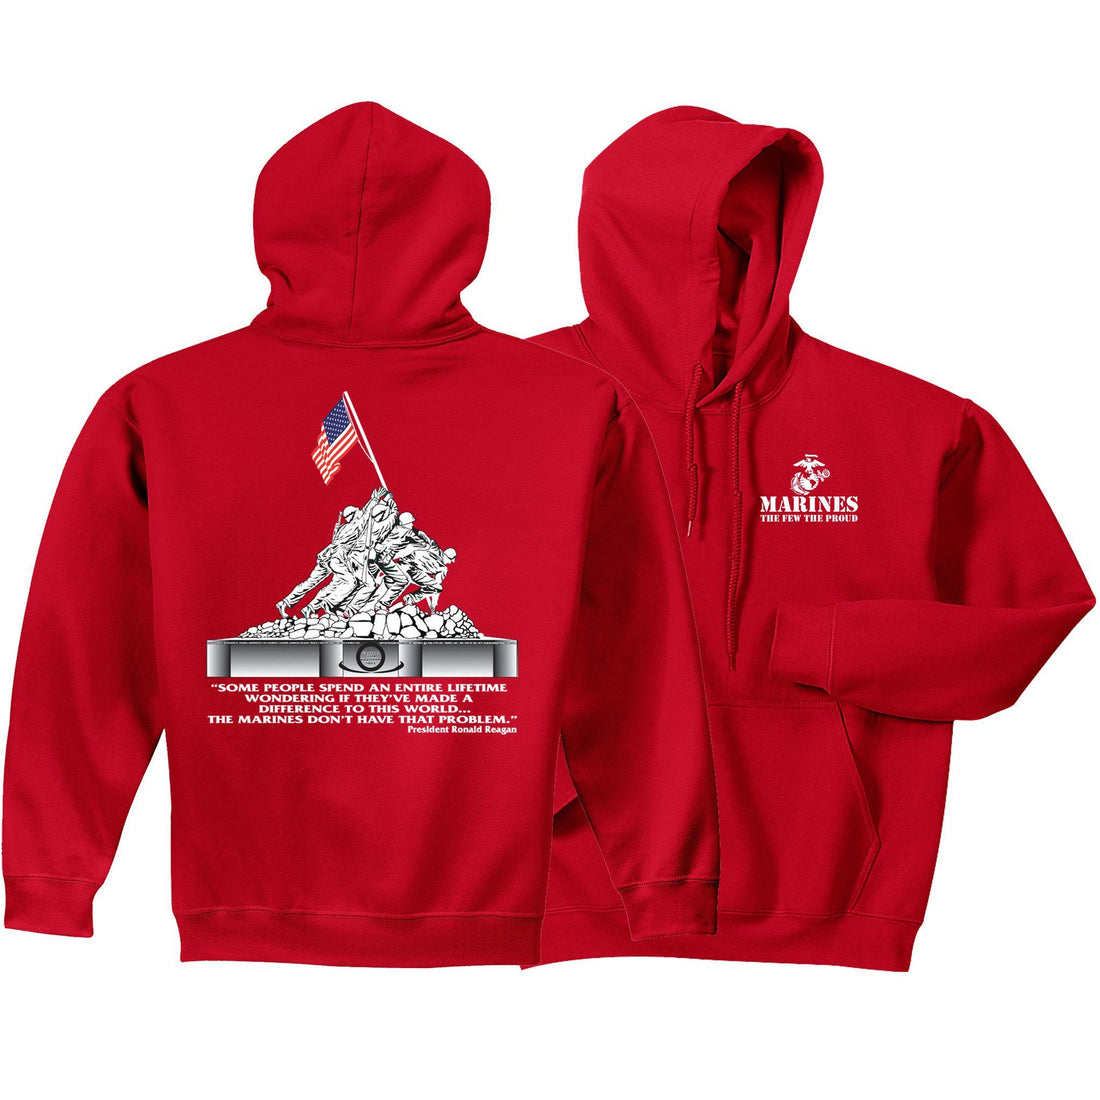 Iwo Jima Front & Back Hoodie (MULTIPLE COLORS) - Marine Corps Direct  - 2